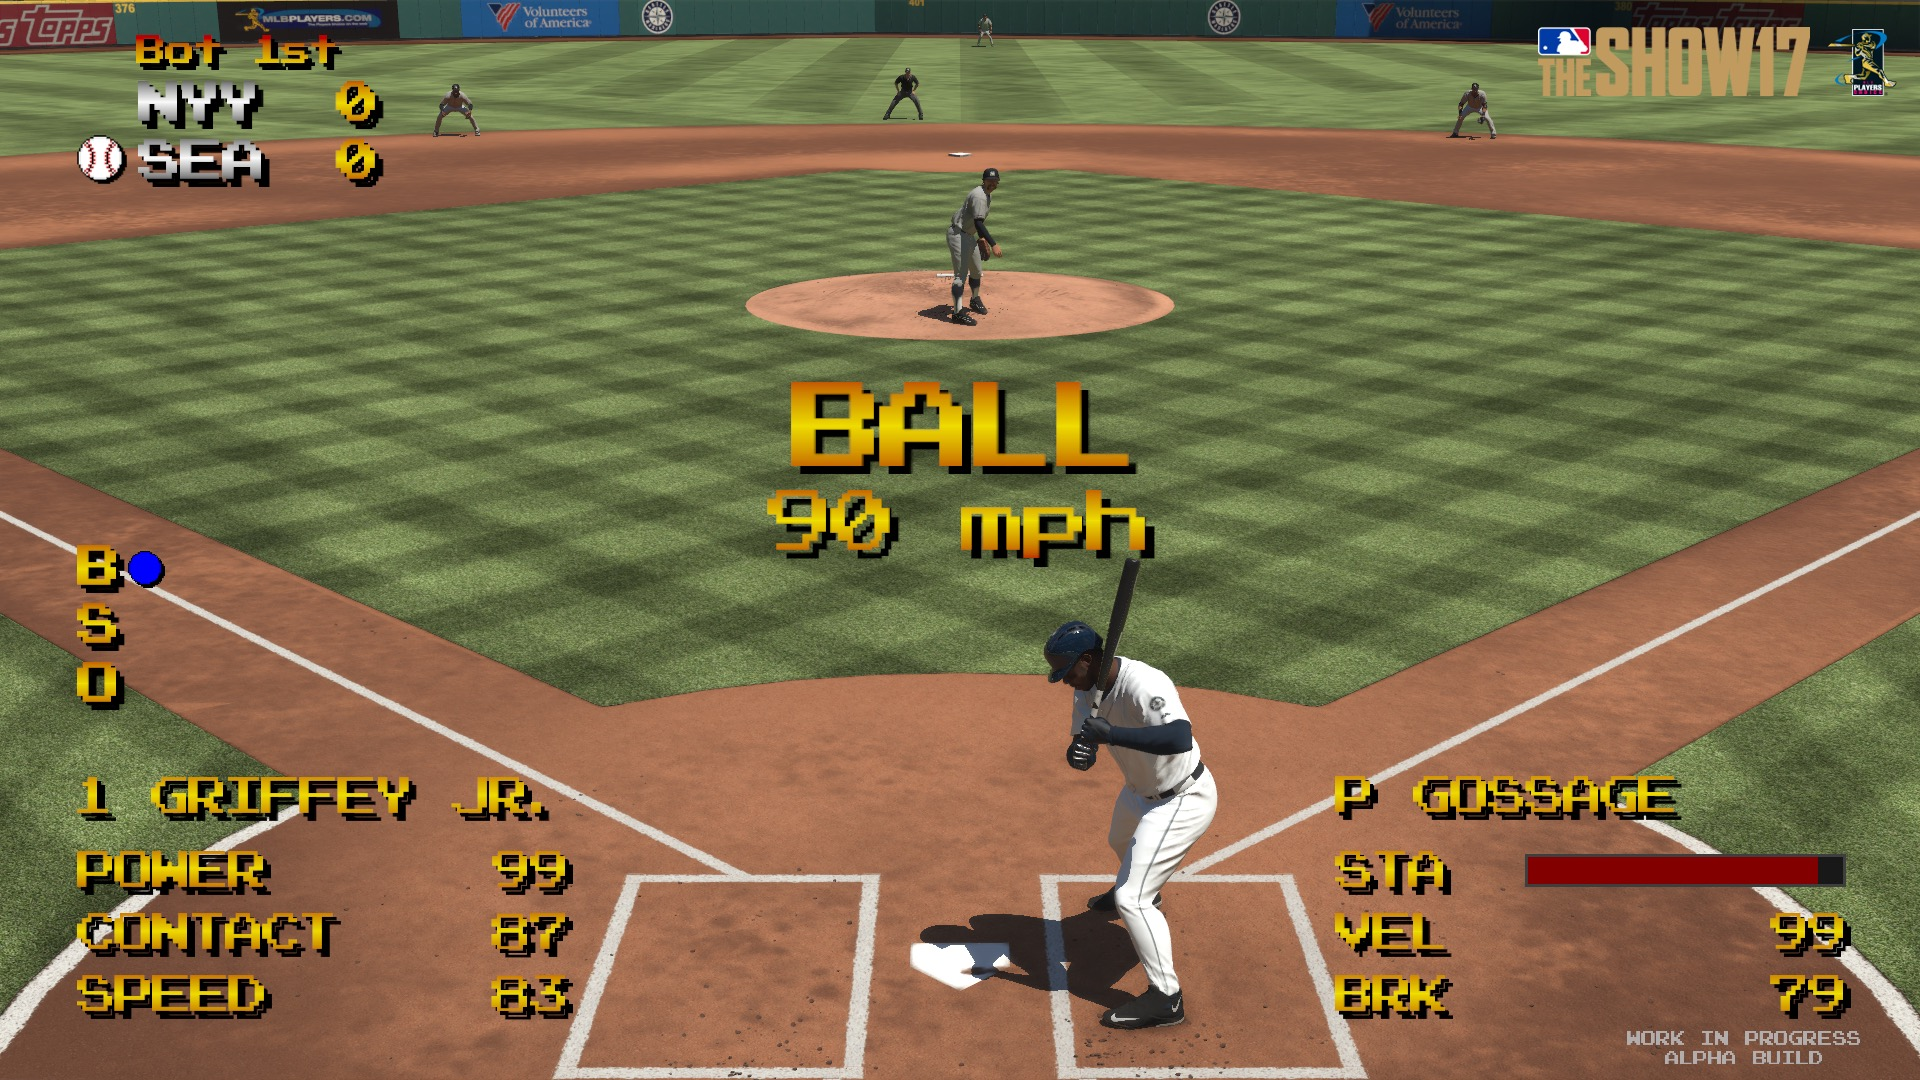 MLB The Show 17 makes pitching a cinch in Retro Mode